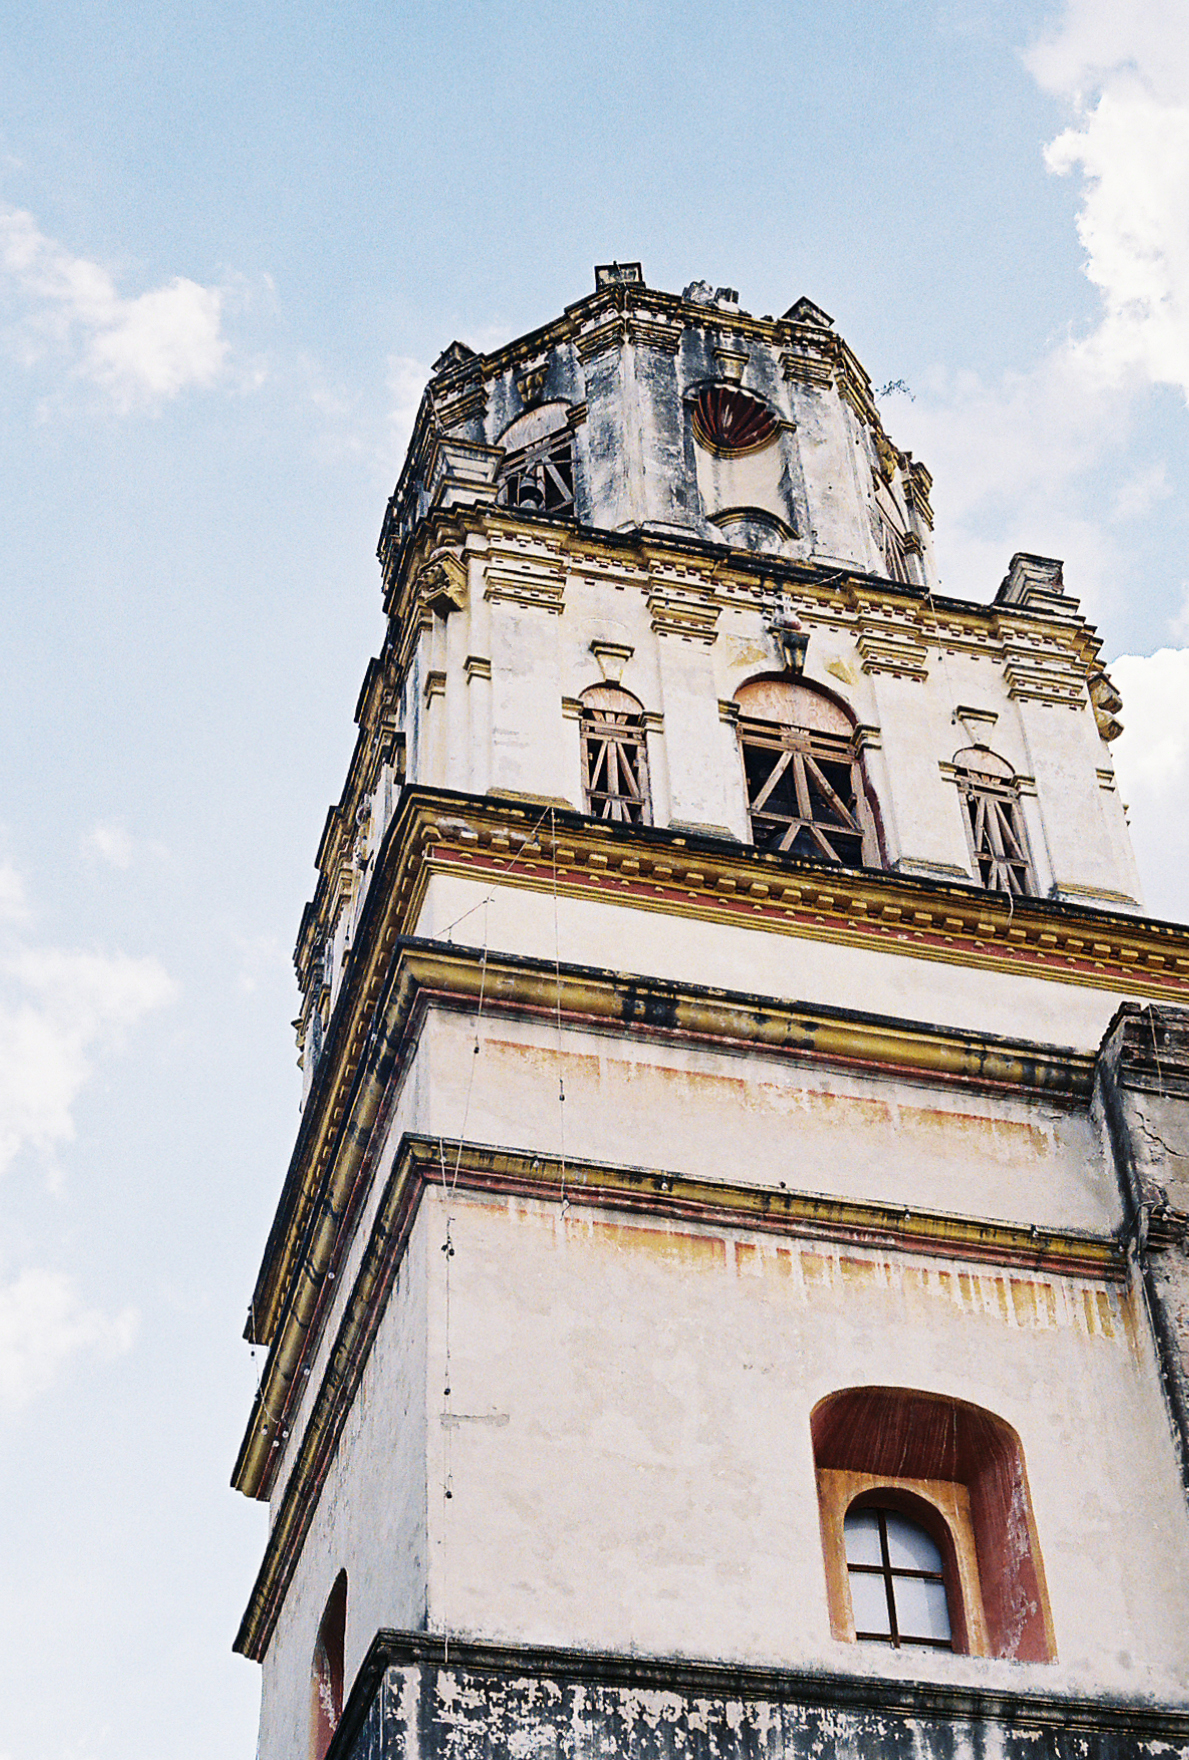 An old but beautiful church tower in the Coyoacán district of Mexico City. Photographer Nick Barry